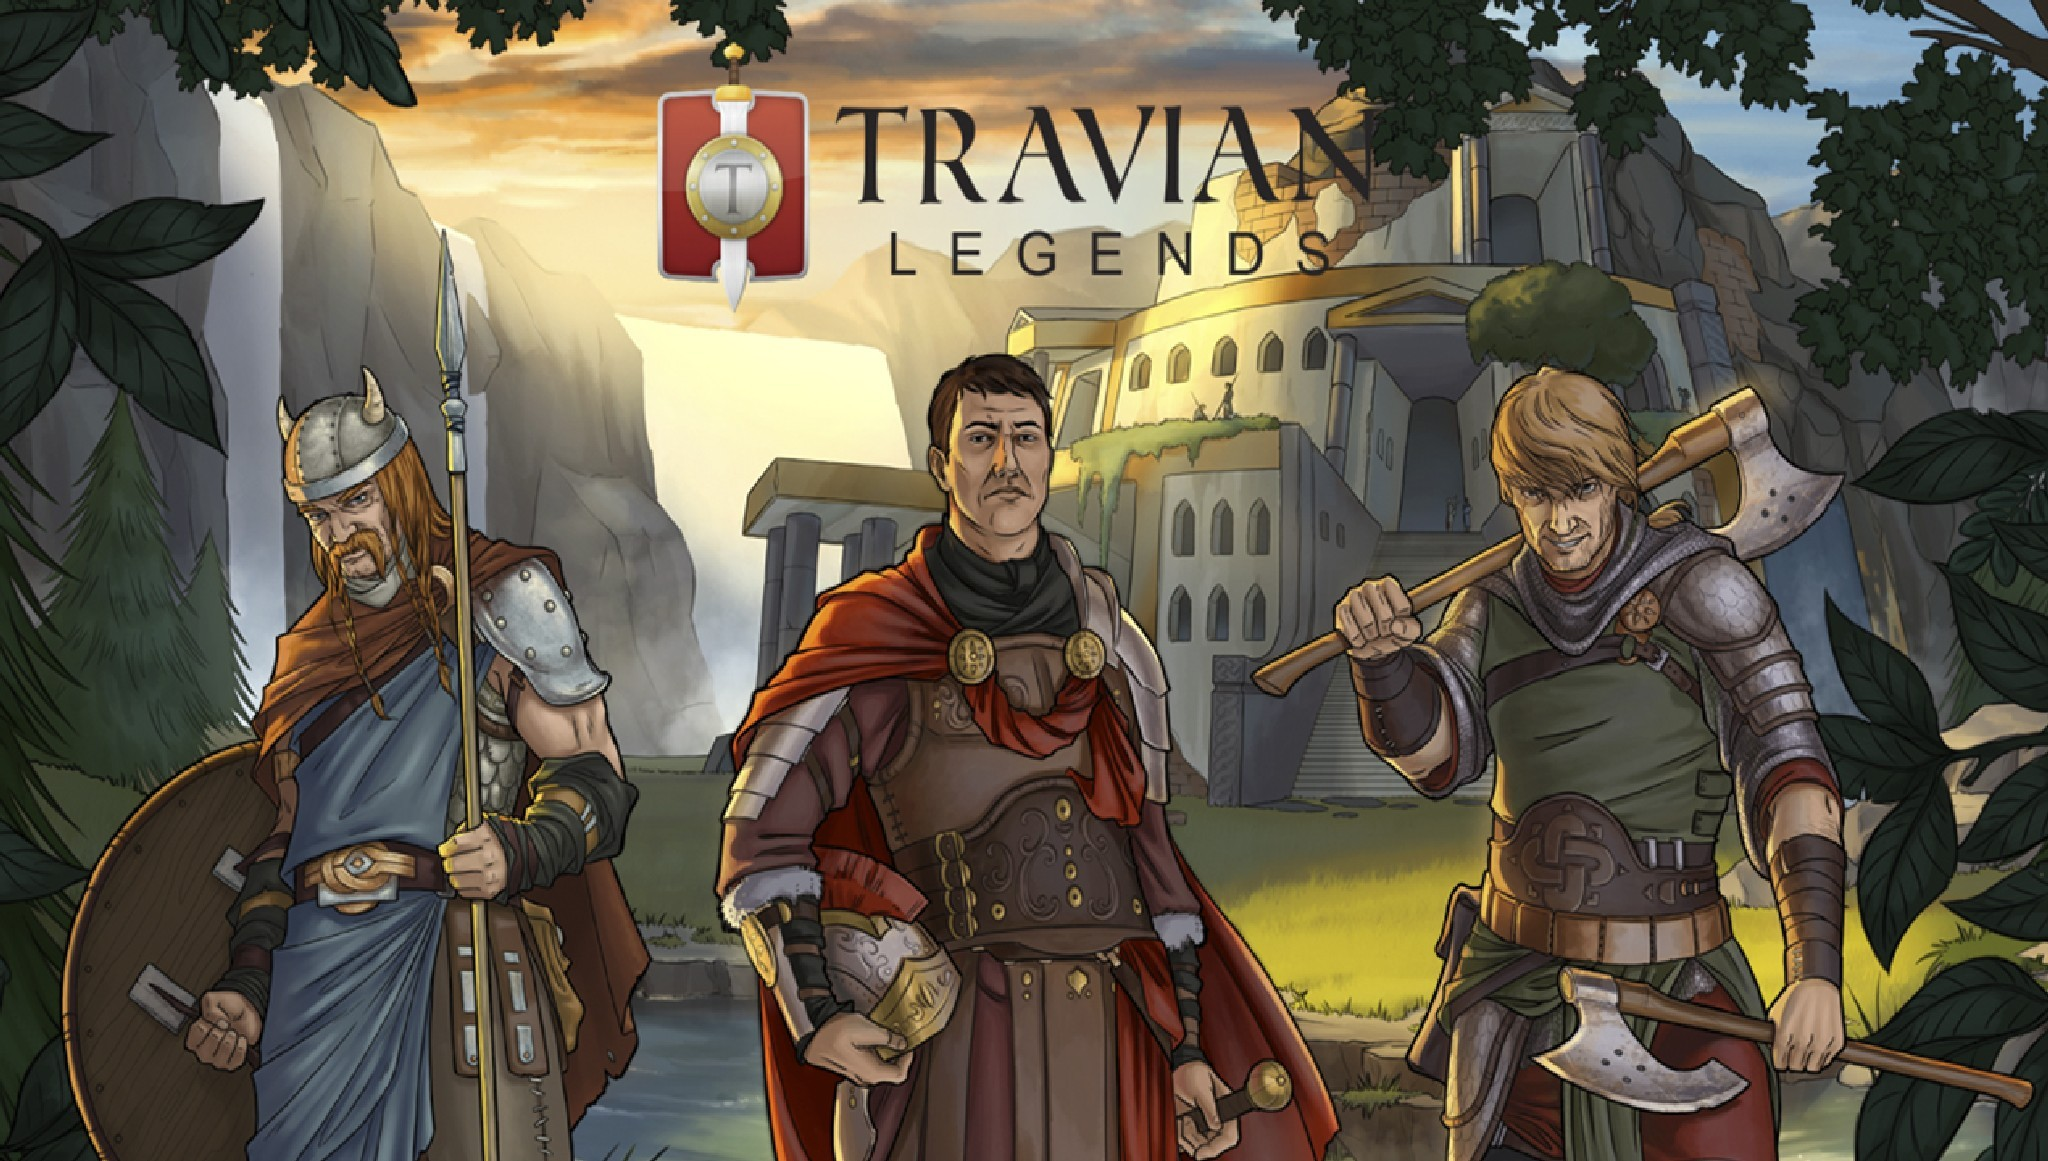 Играть Travian Legends онлайн в браузере